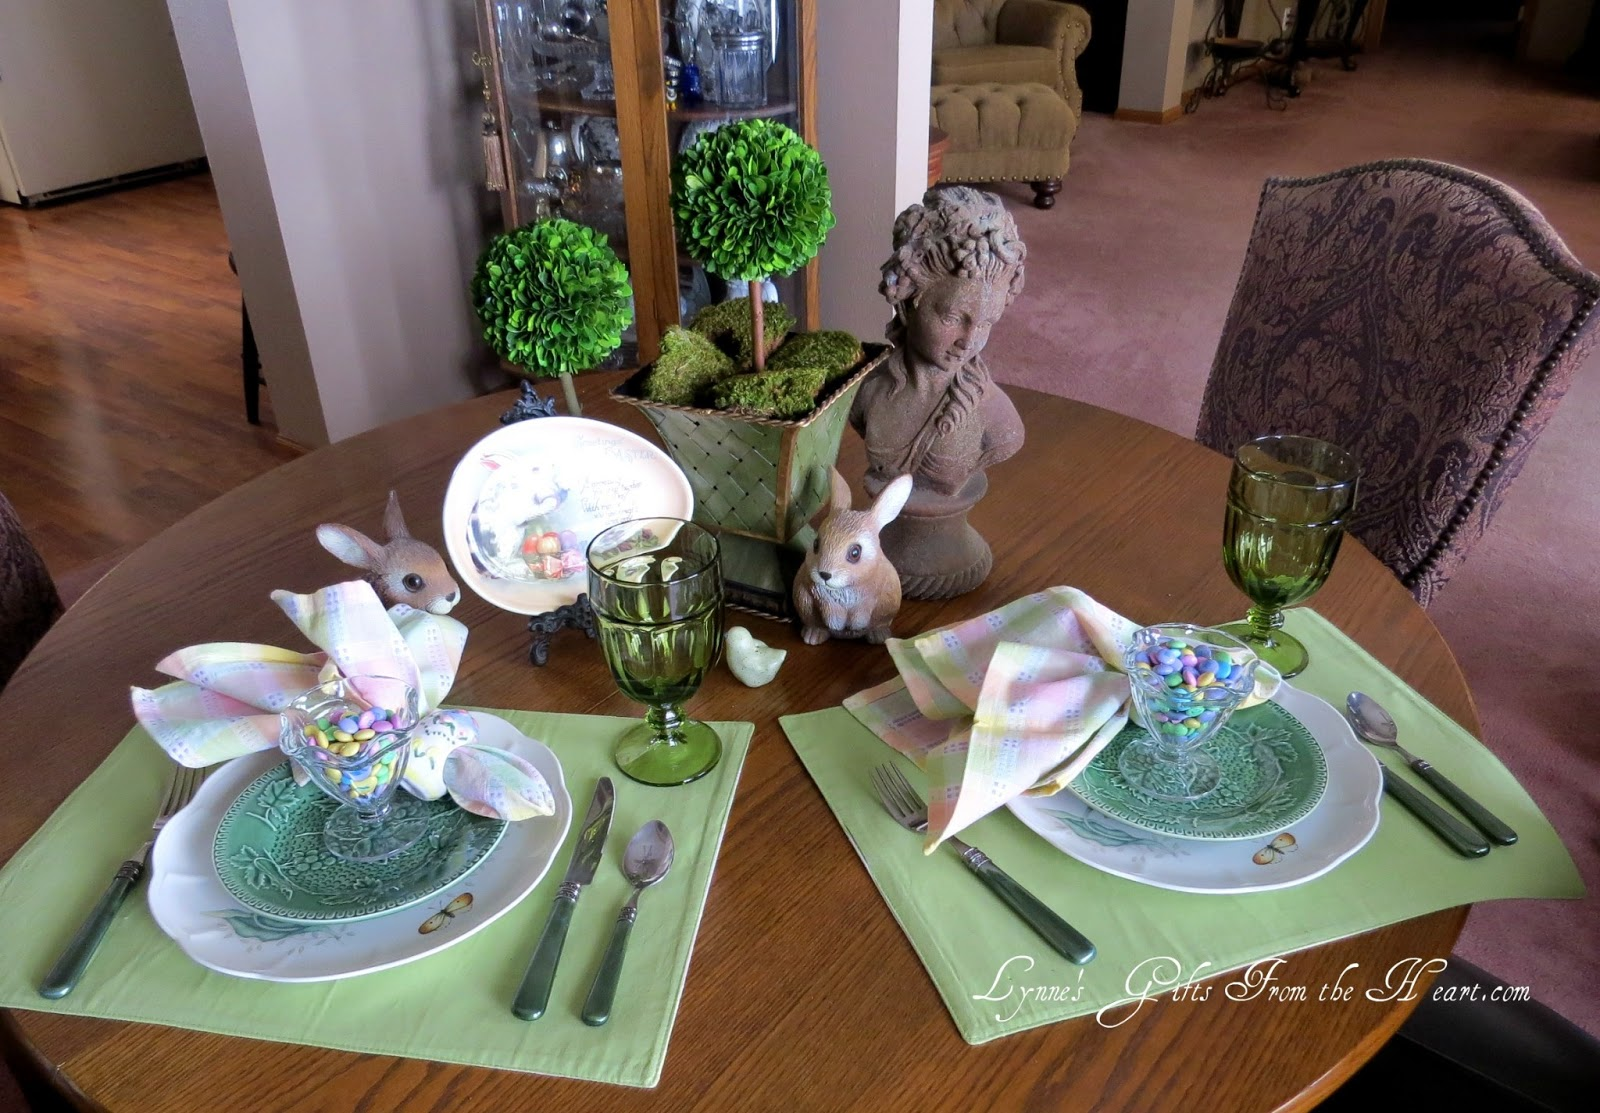 Lynnes Gifts From The Heart Spring Tablescaping With Lenox